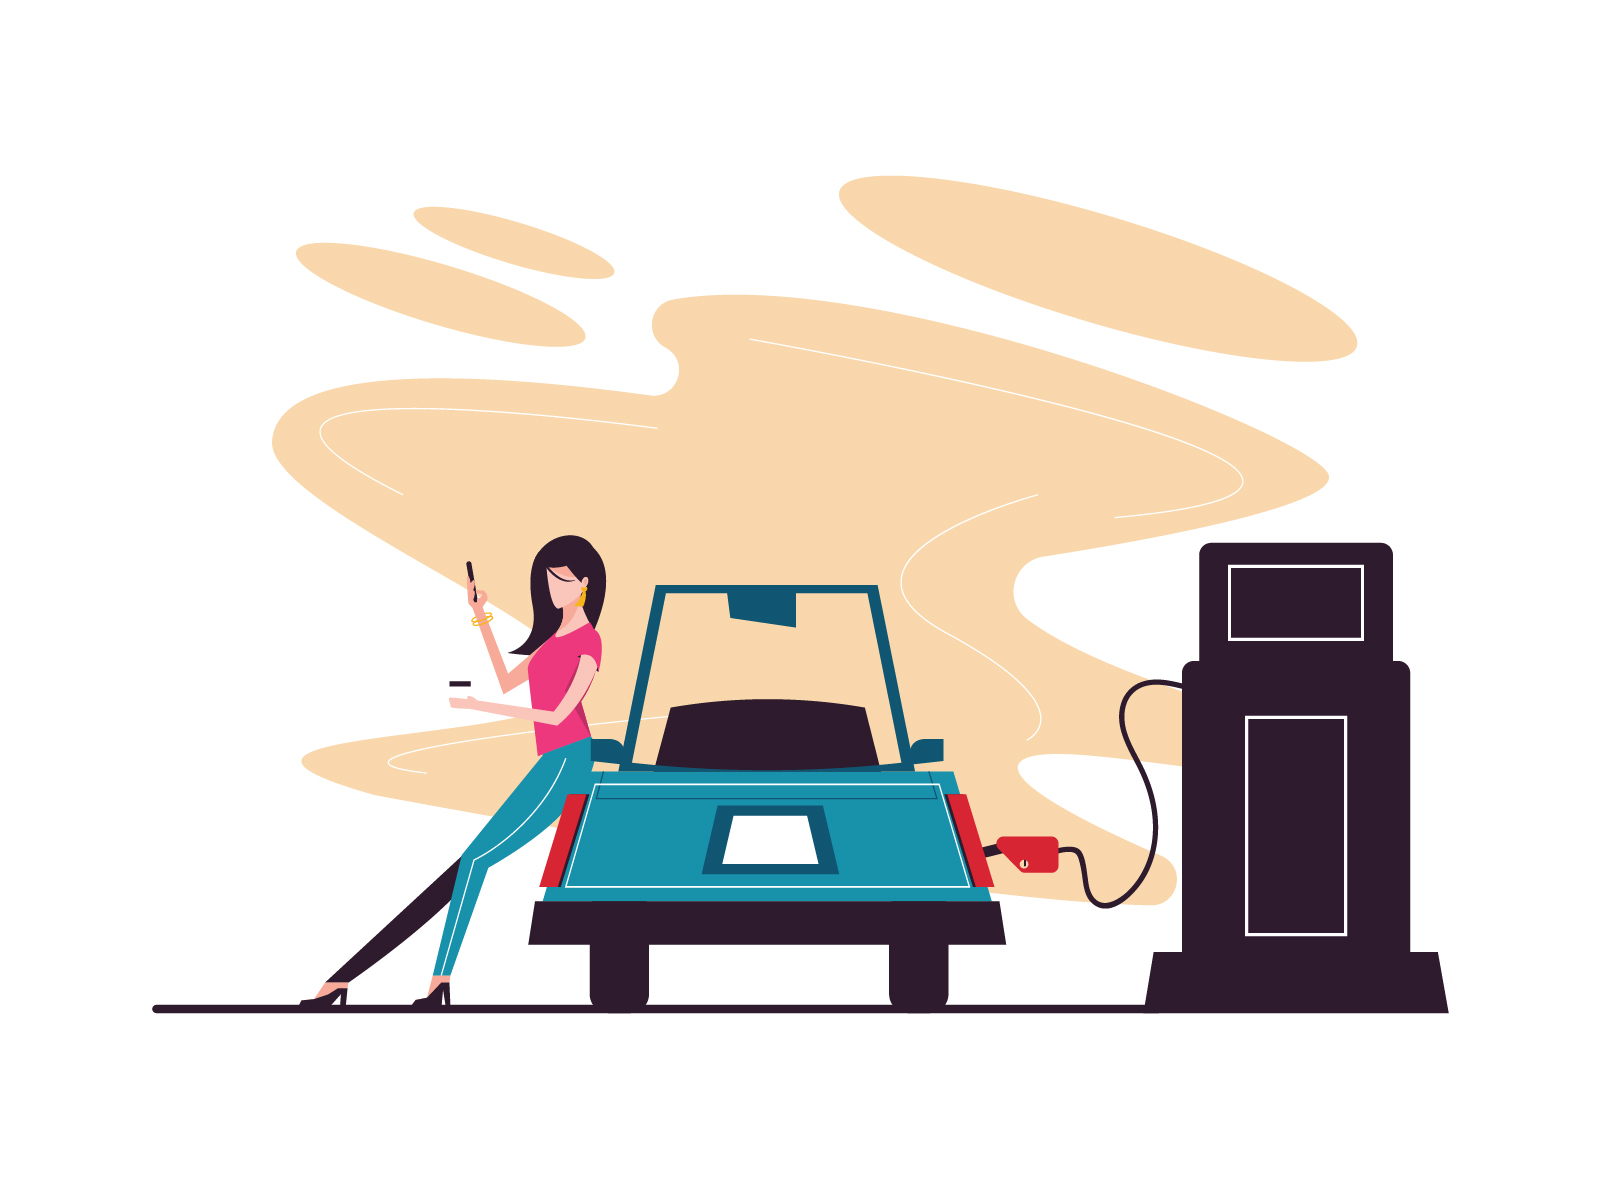 Car Refuel at Gas Station vector